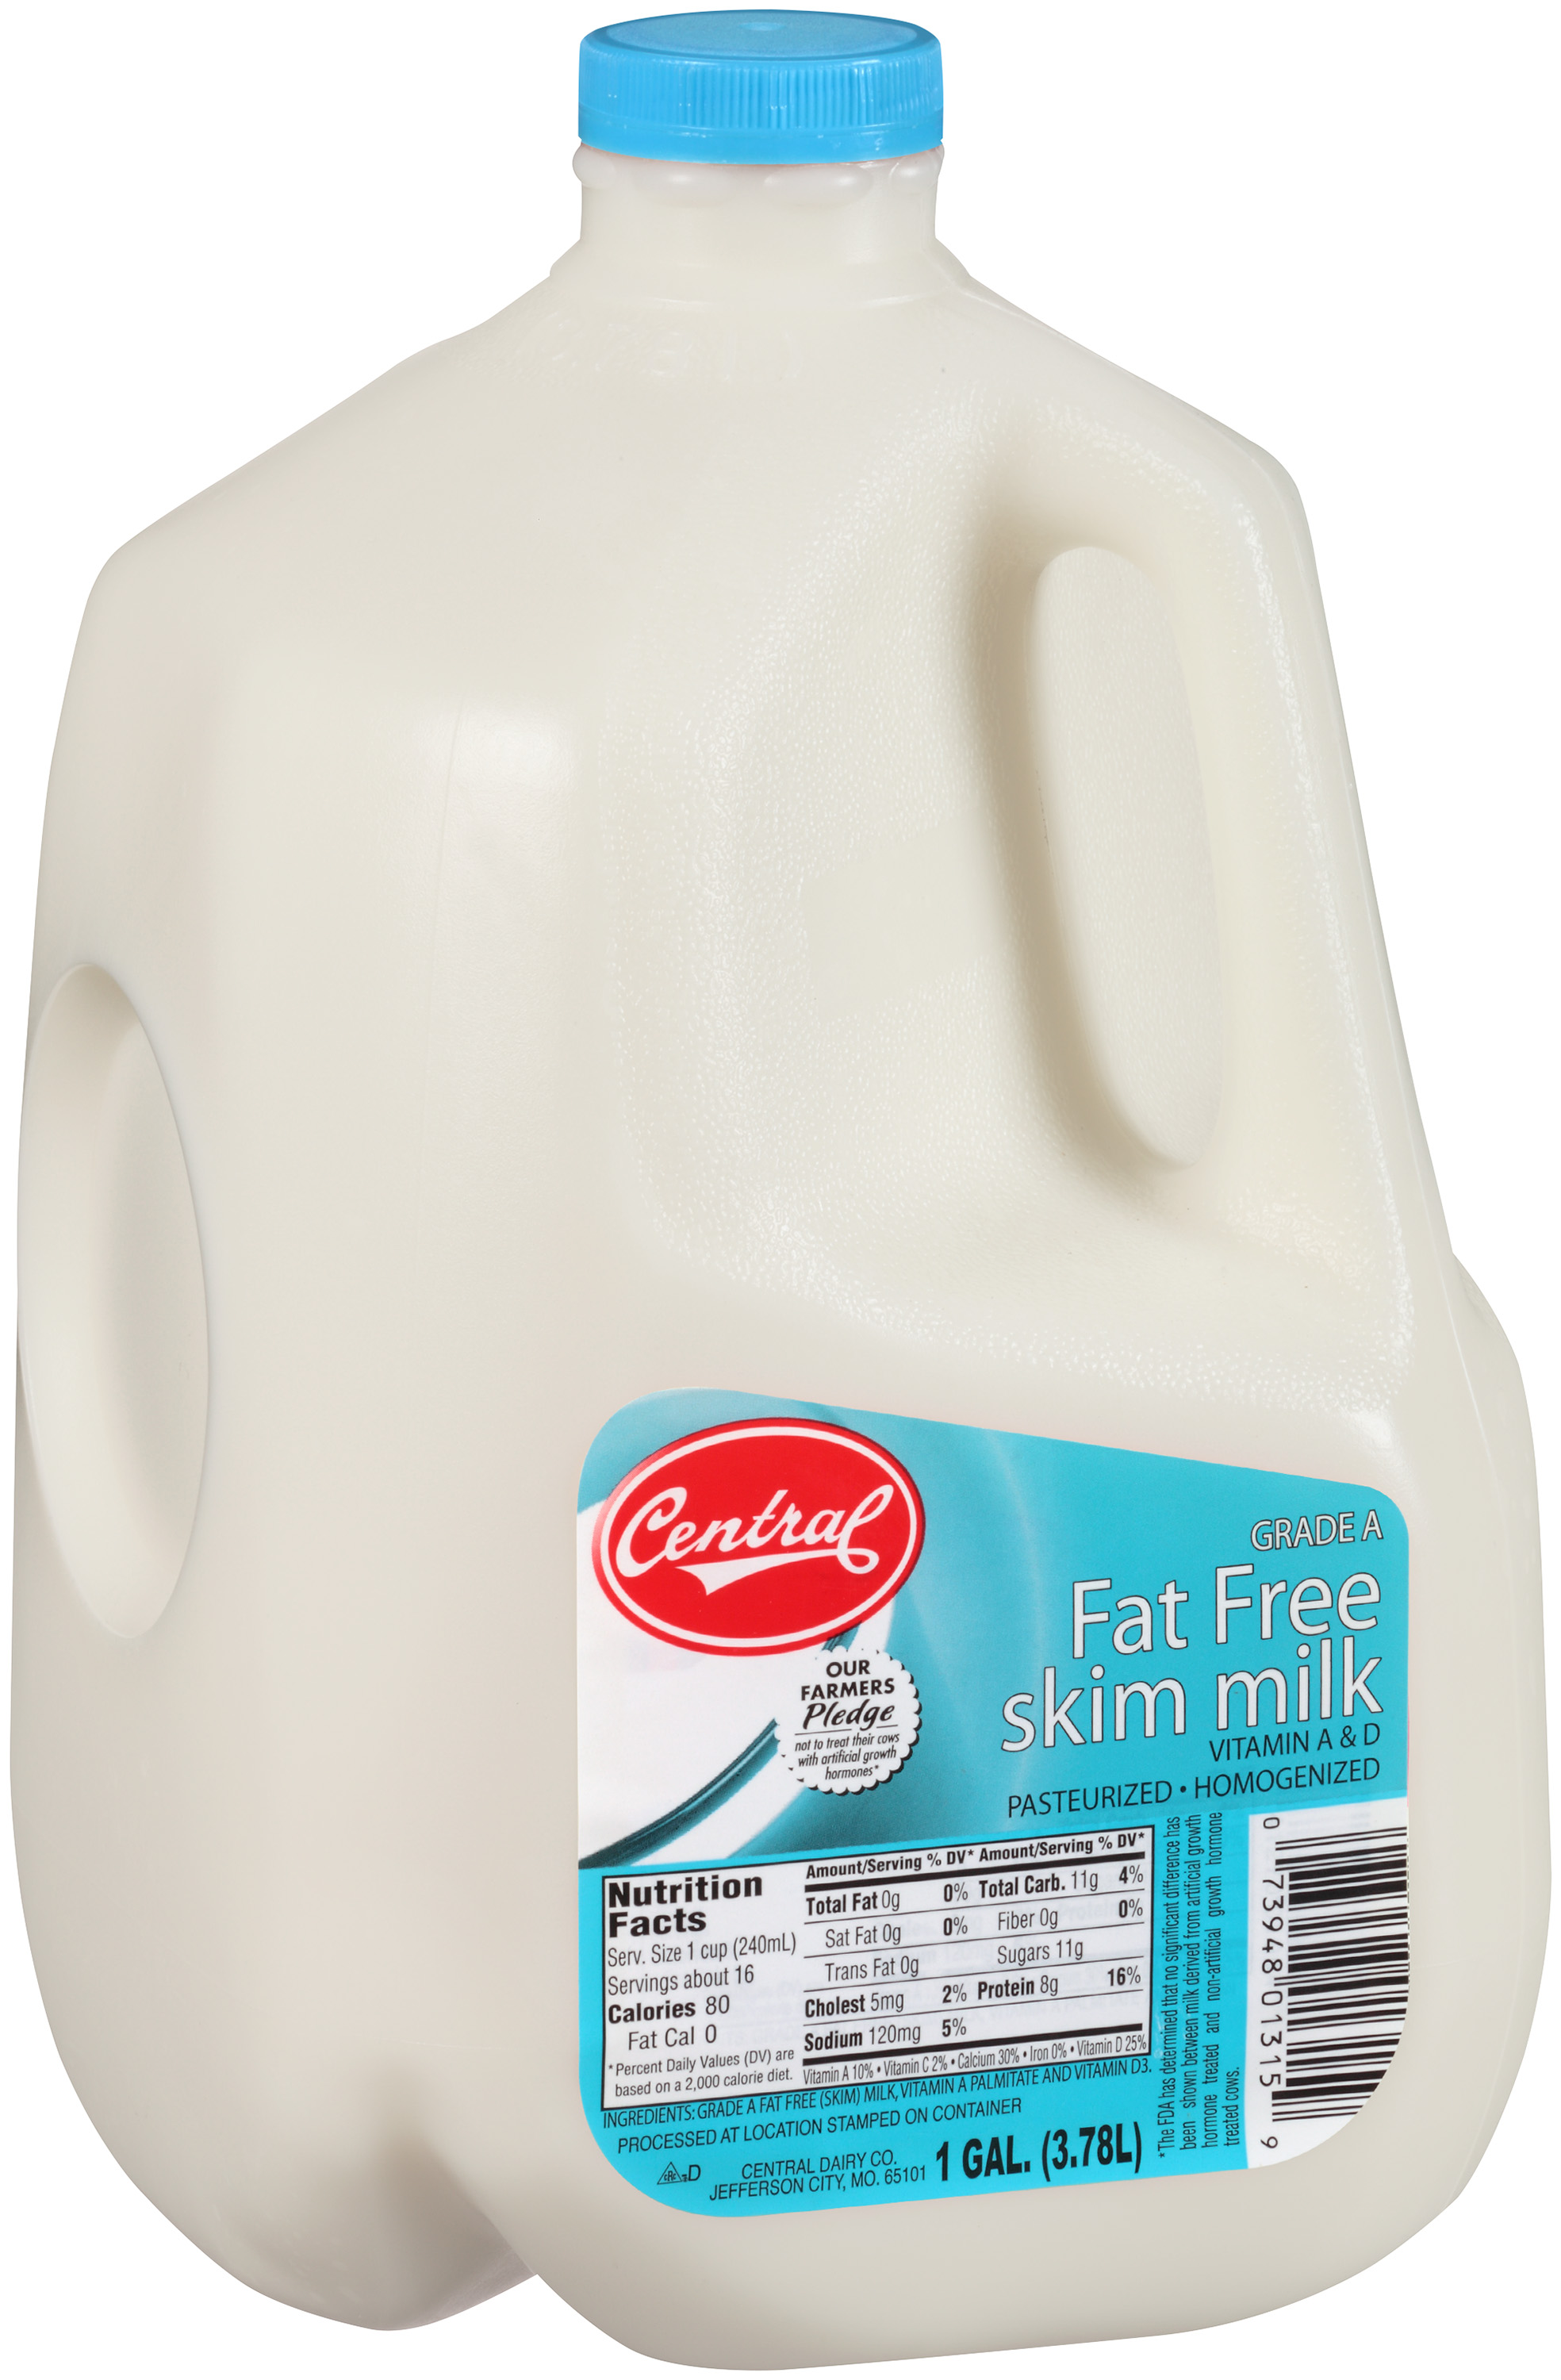 Difference Between Skim Milk And Fat Free Milk